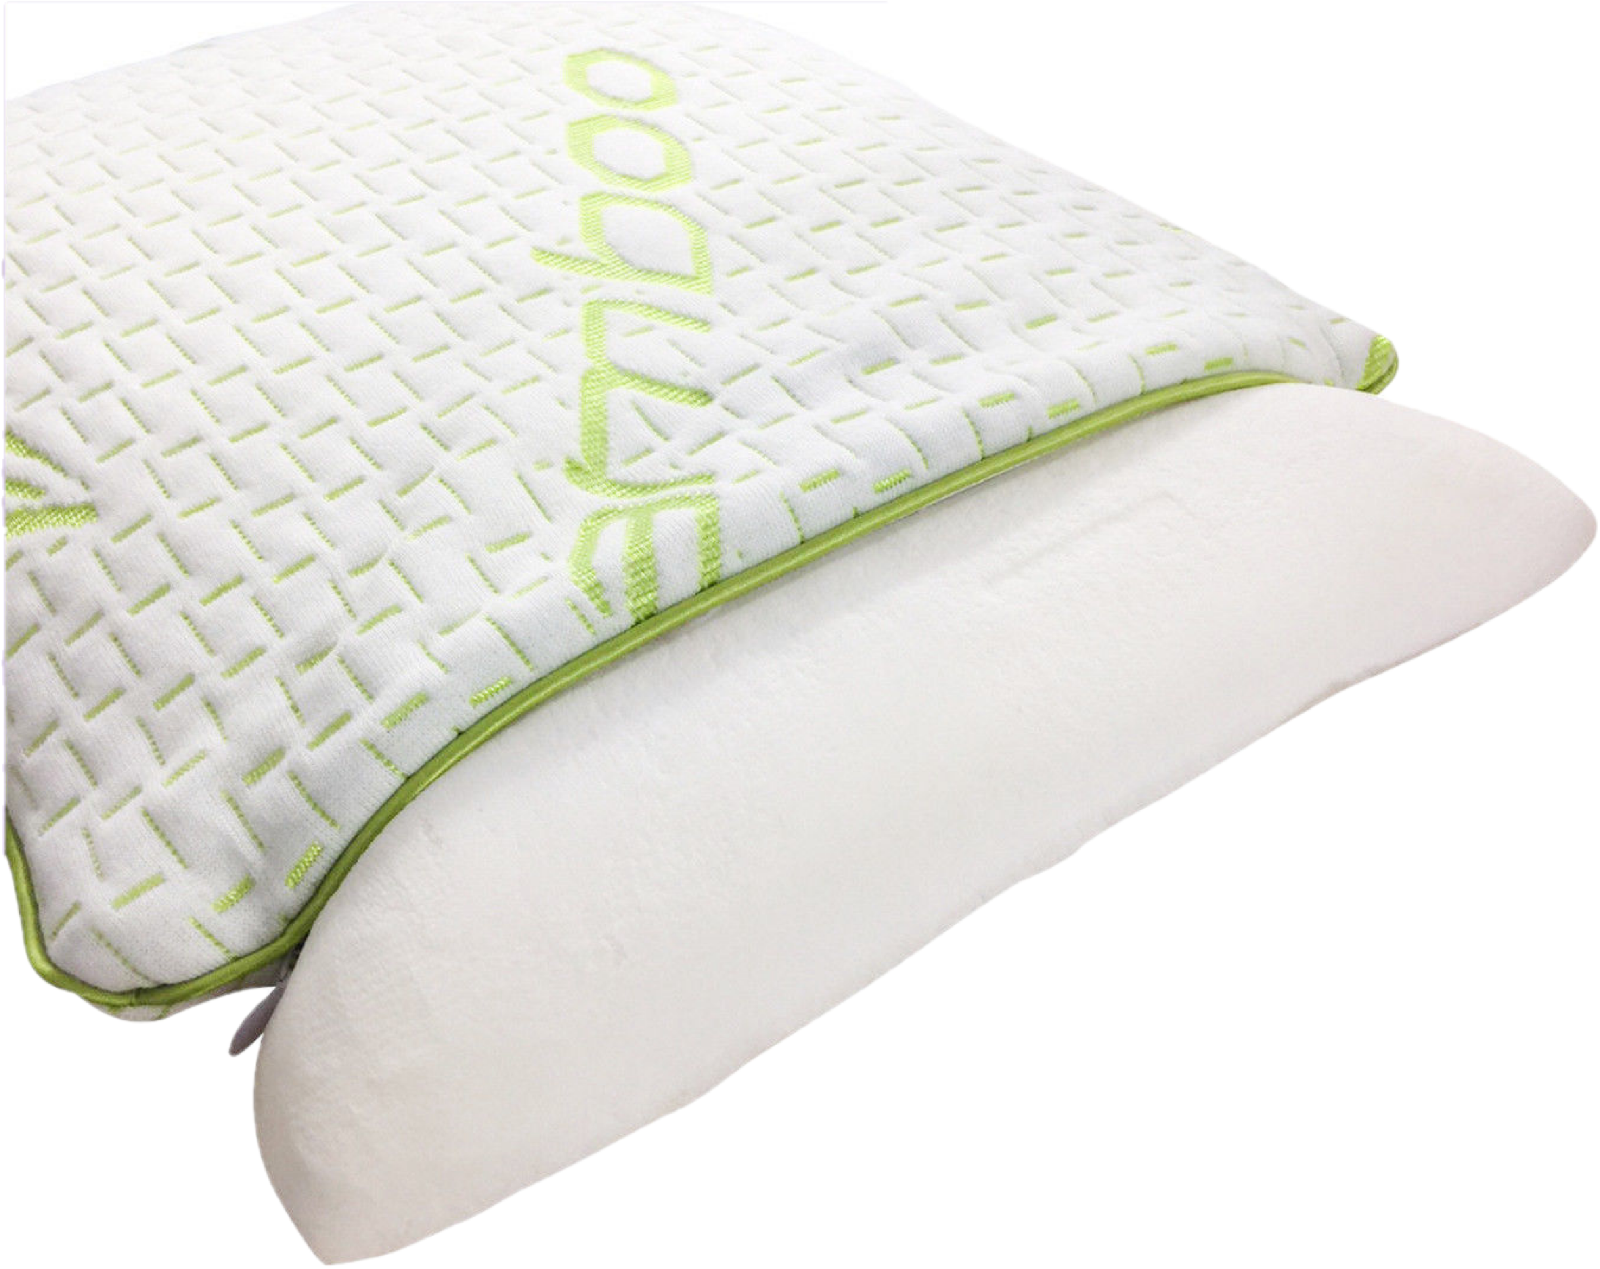 Bamboo Standard Memory Foam Cot Pillow Bed Baby Soft Toddler Sleeping Kid Pack 2 4